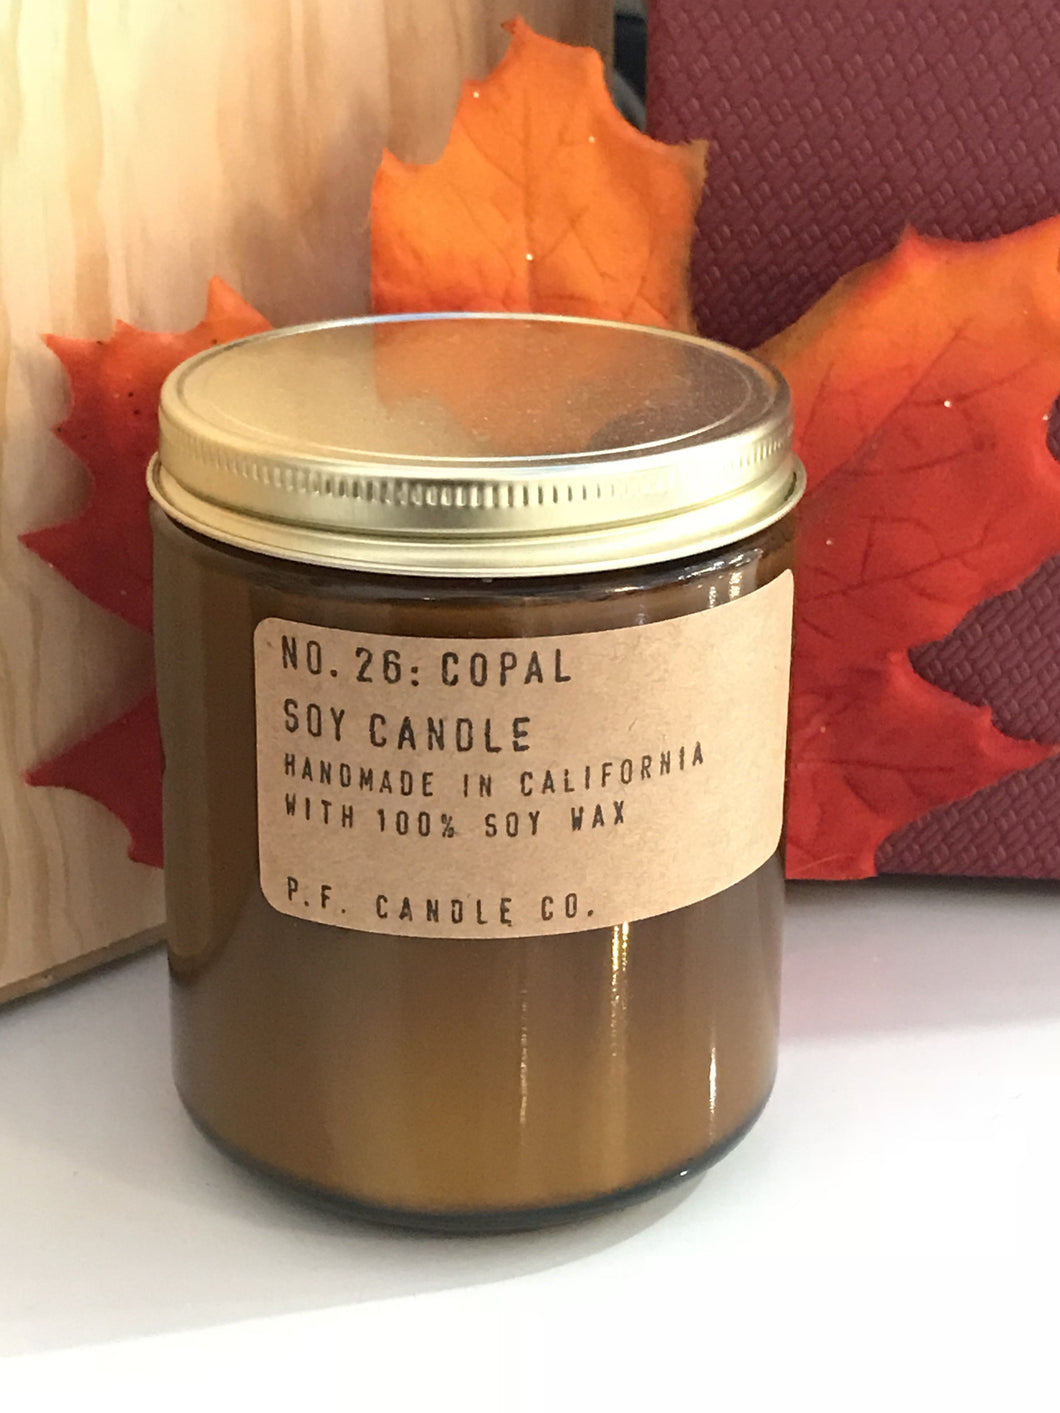 No. 26 : Copal Soy Wax  7.2 oz    p.f candle